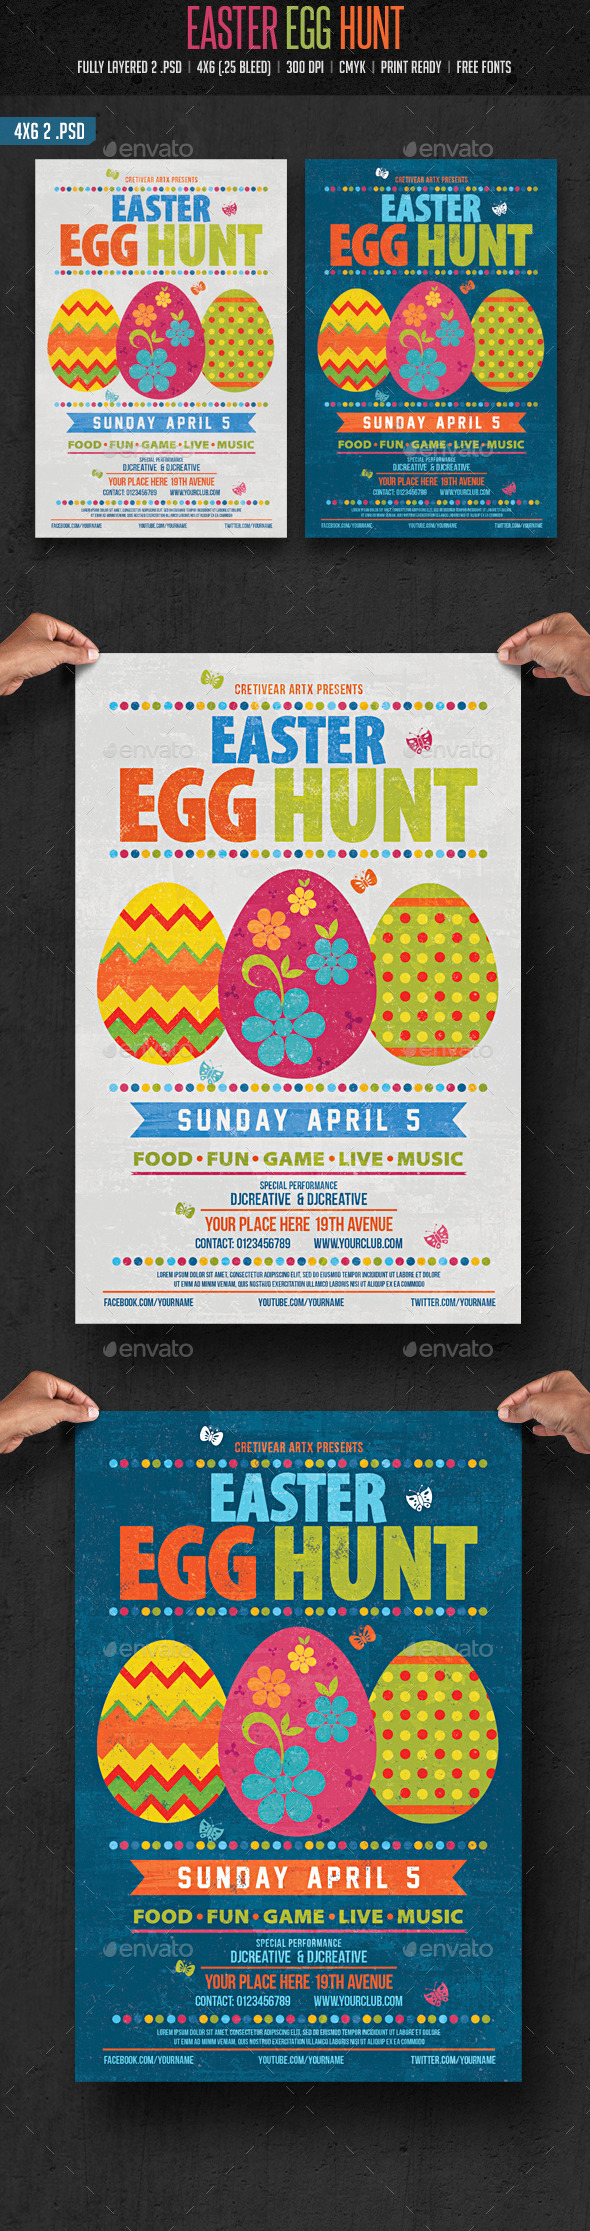 GraphicRiver Easter Egg Hunt Flyer 10536419